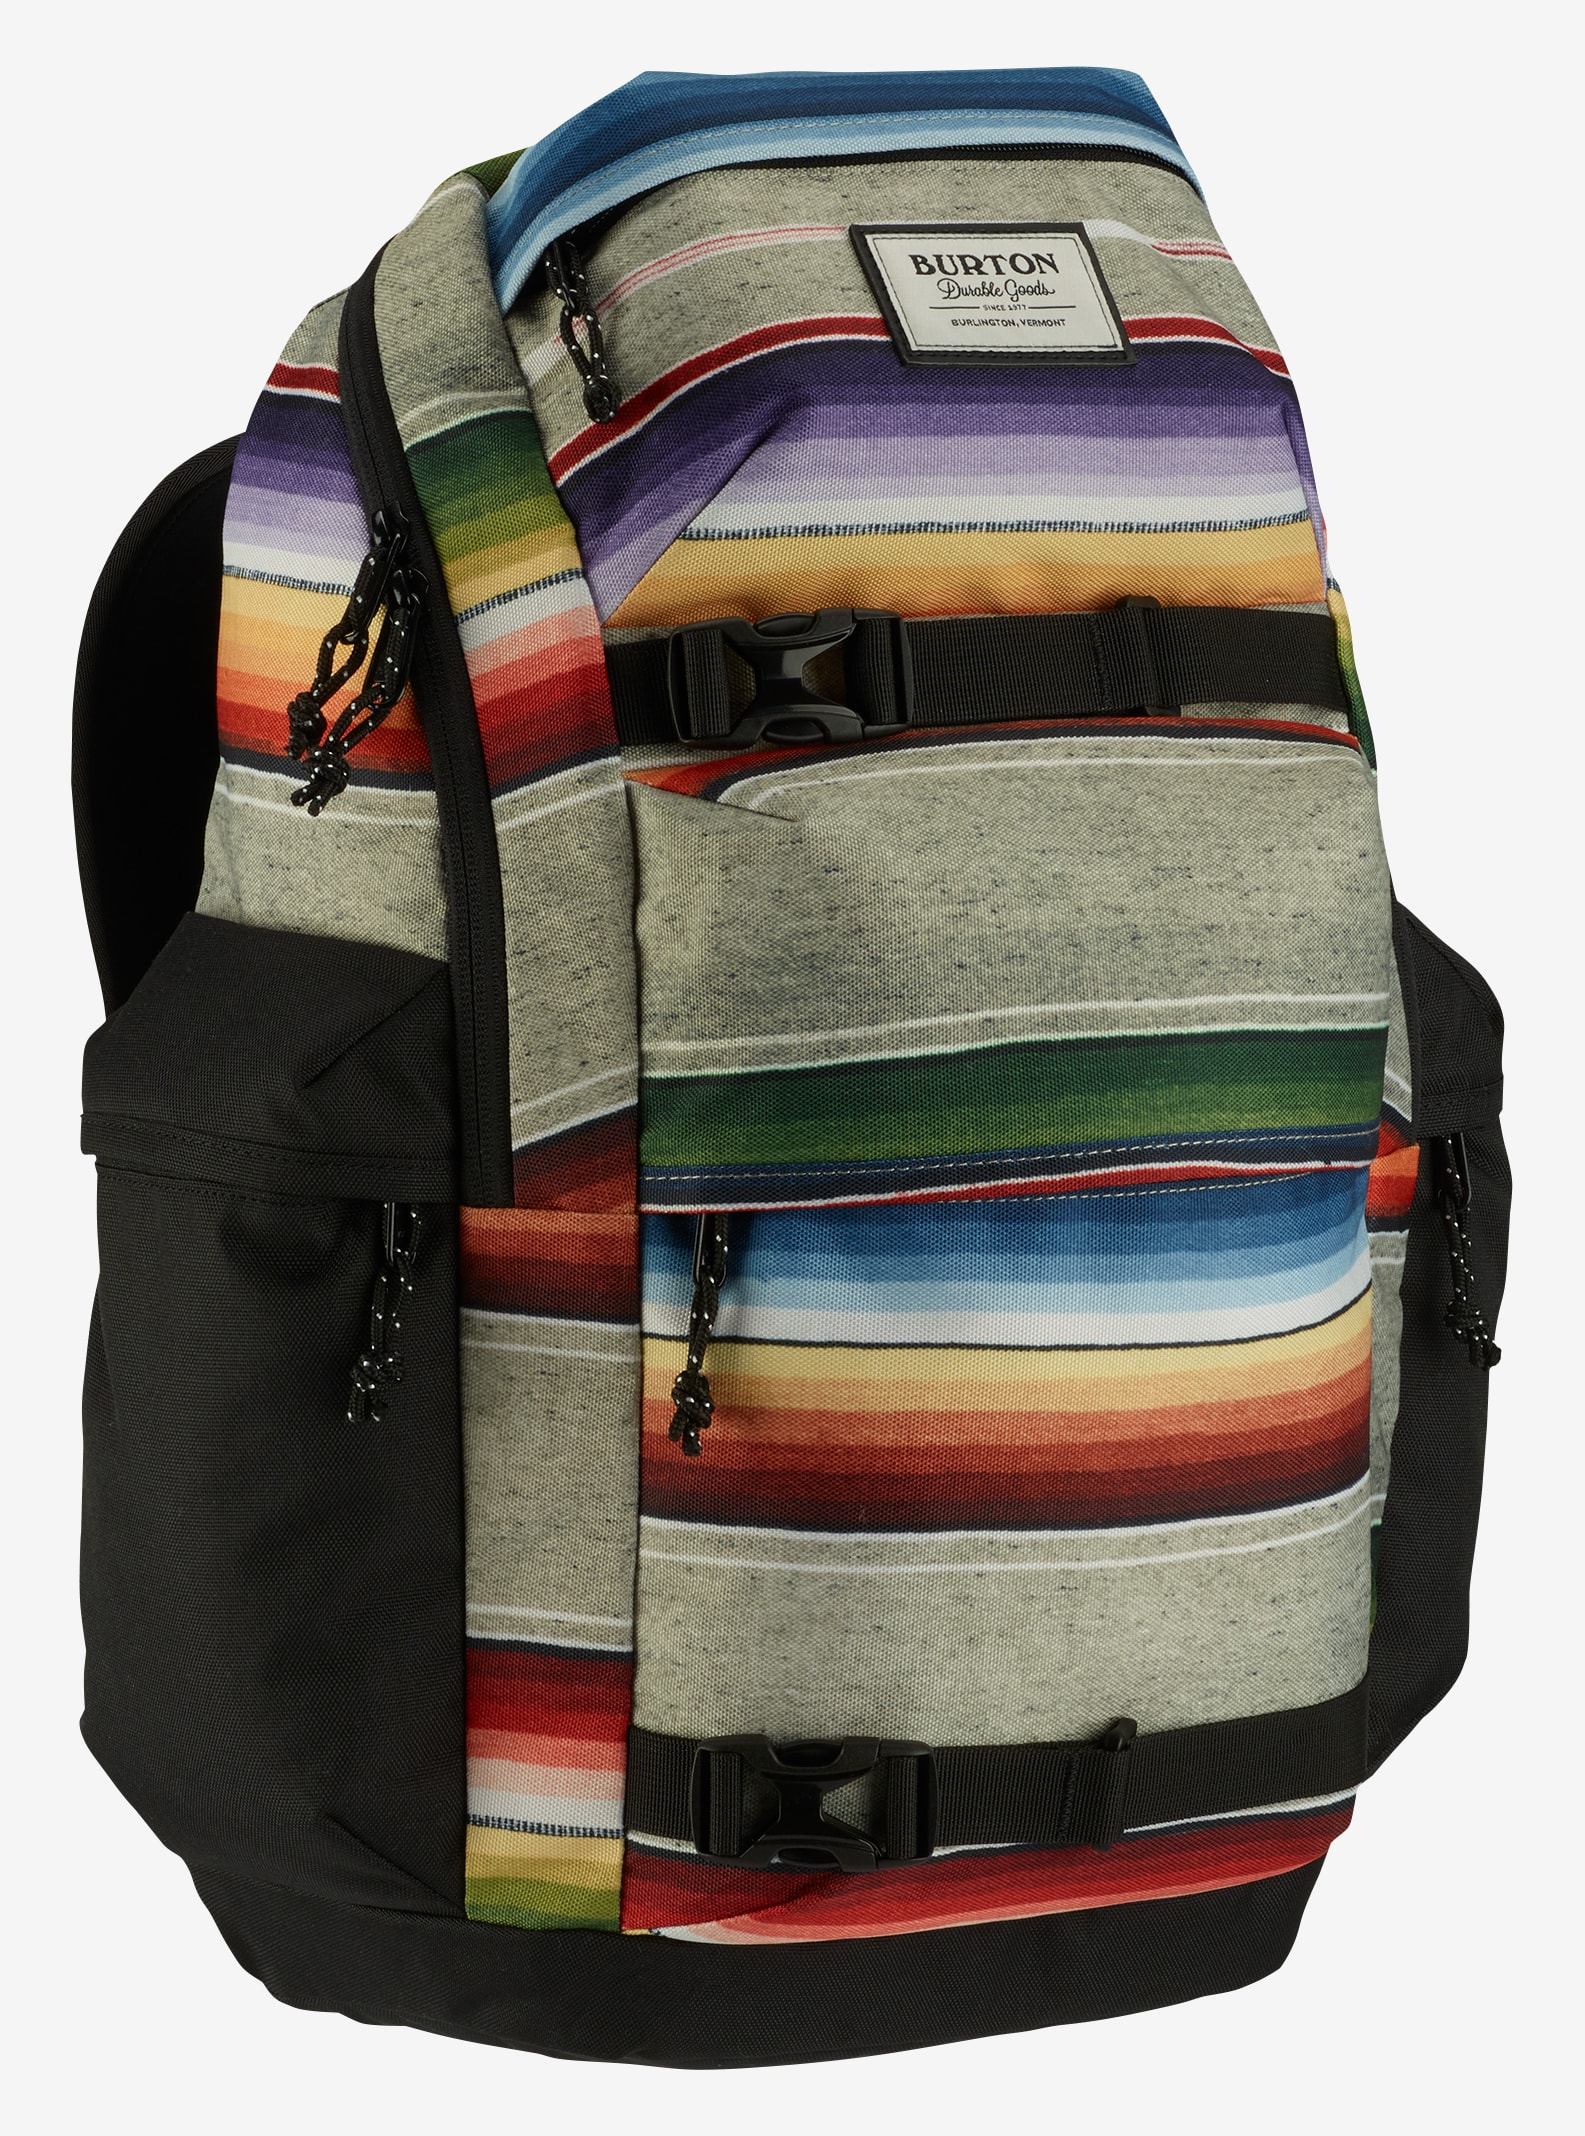 Burton Kilo Backpack shown in Bright Sinola Stripe Print